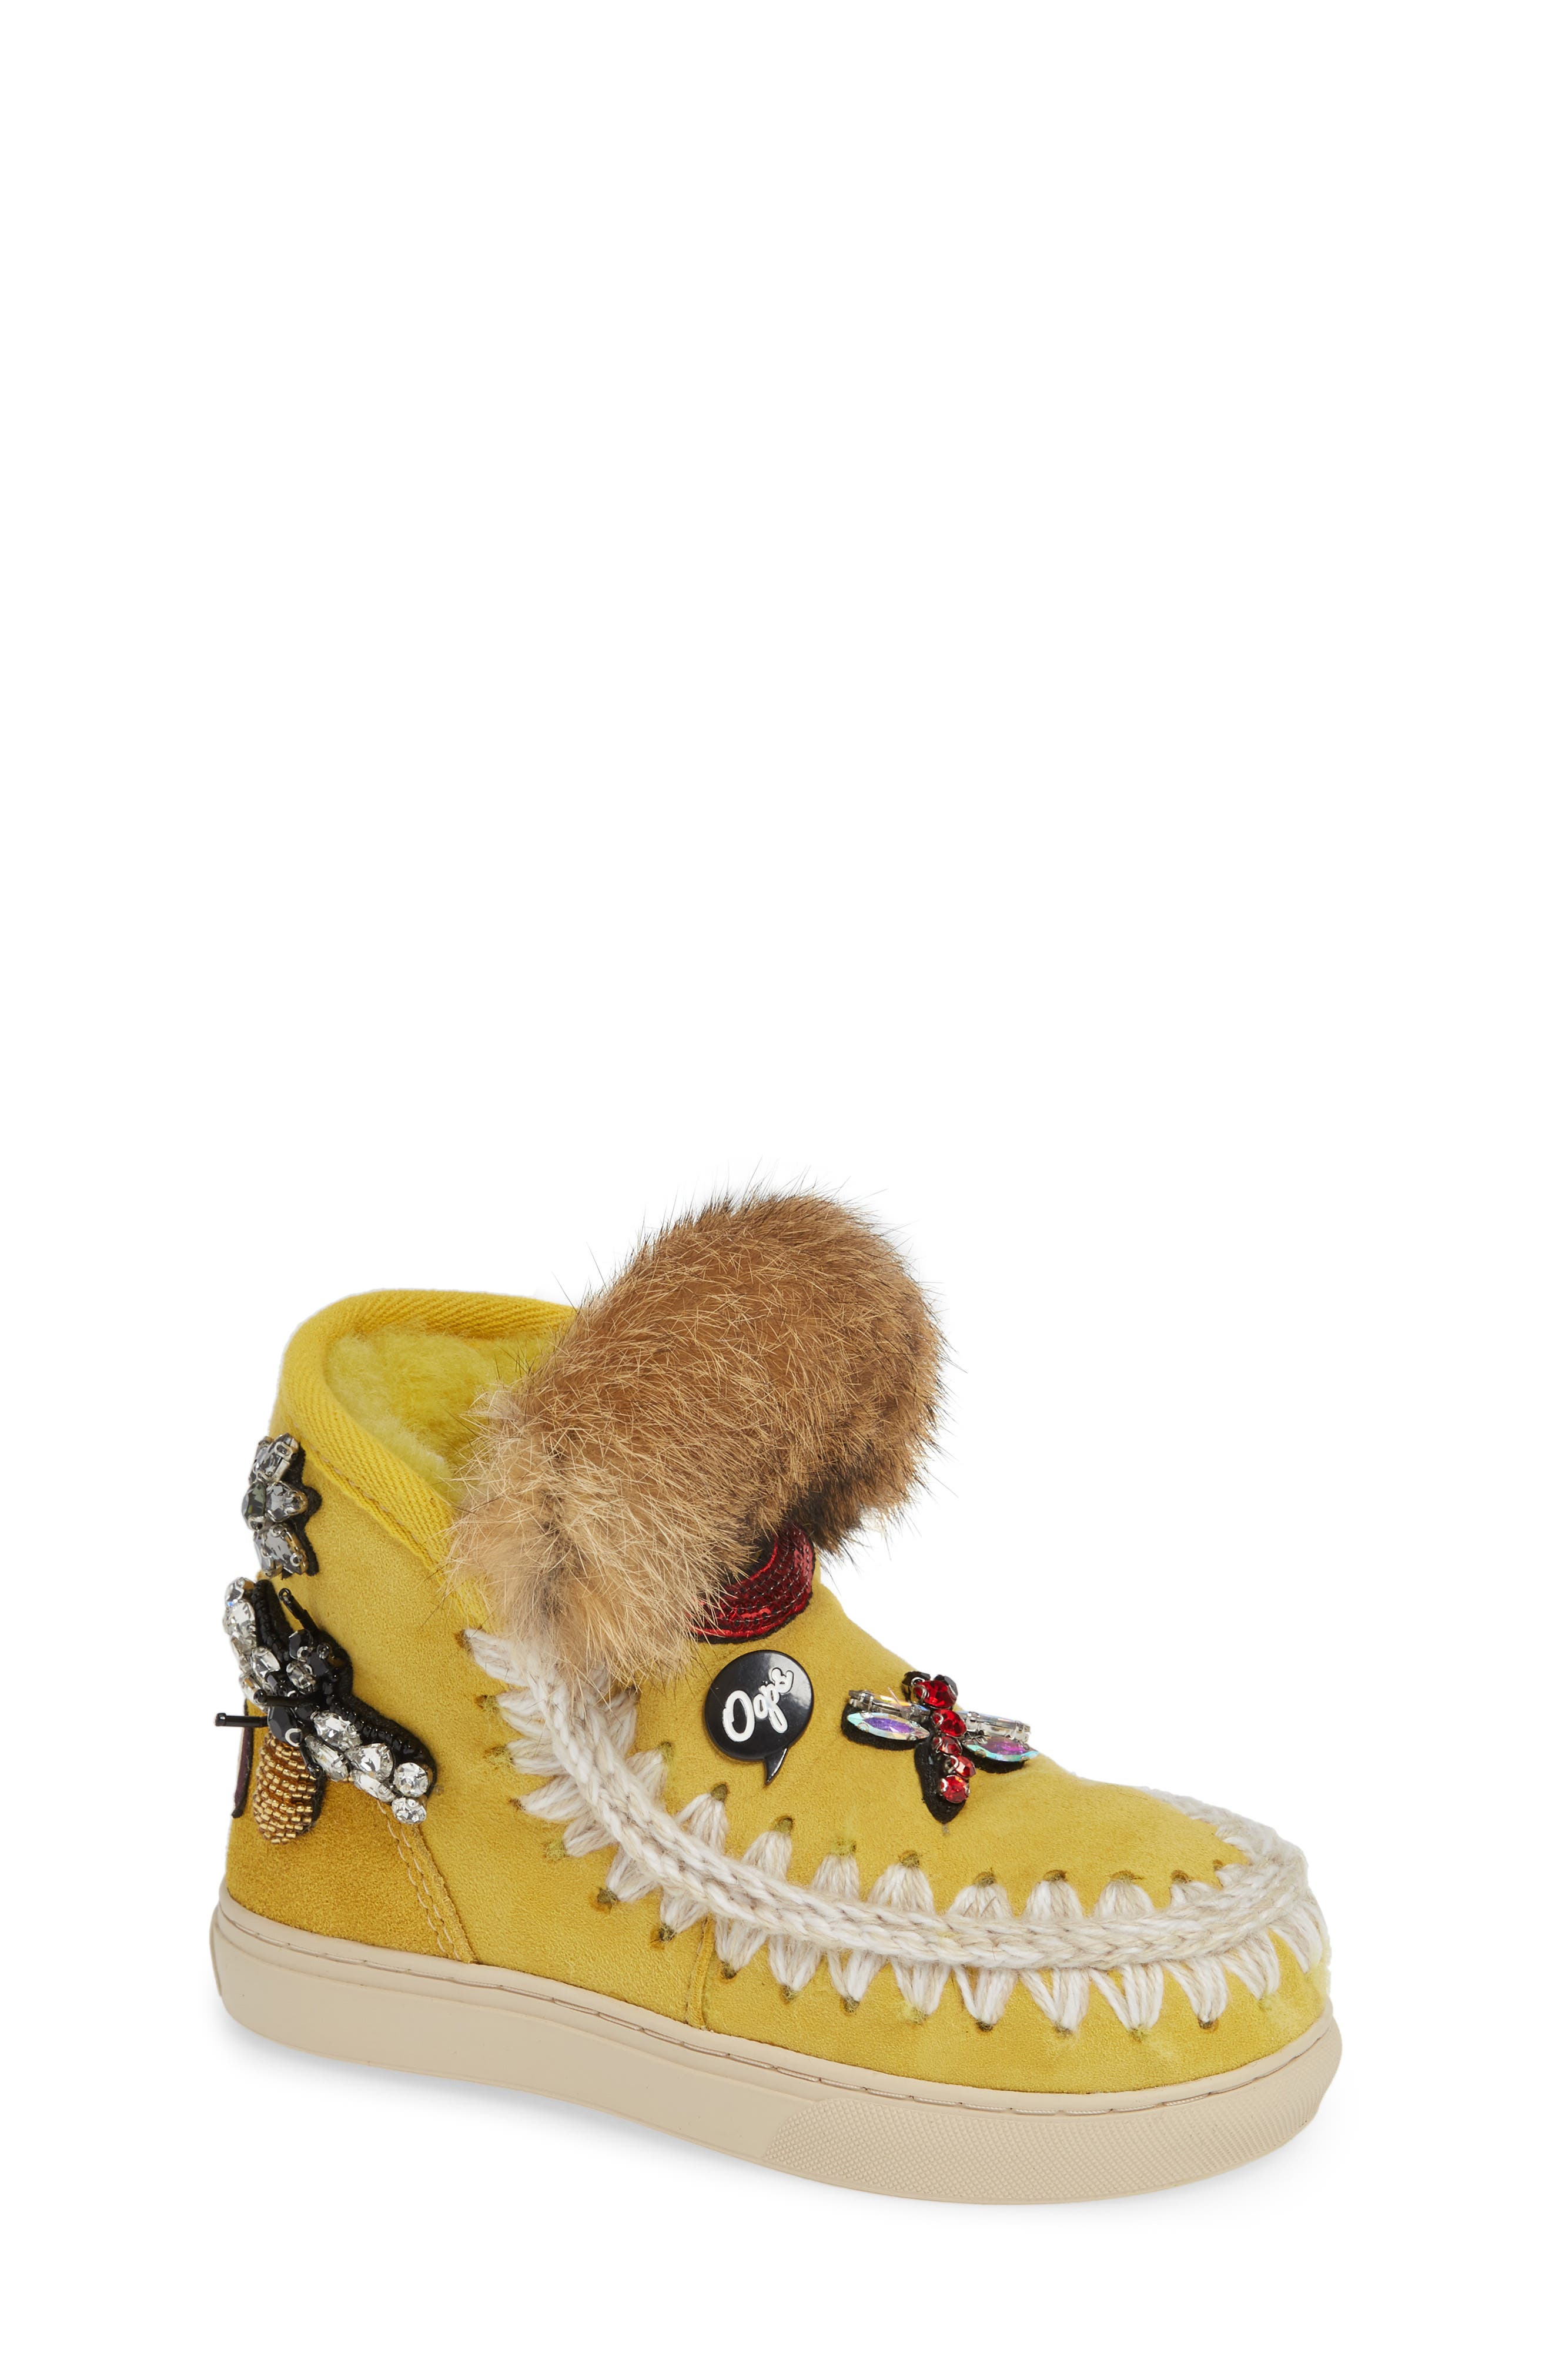 Embellished Genuine Shearling Sneaker Boot,                             Main thumbnail 1, color,                             OLIVE YELLOW